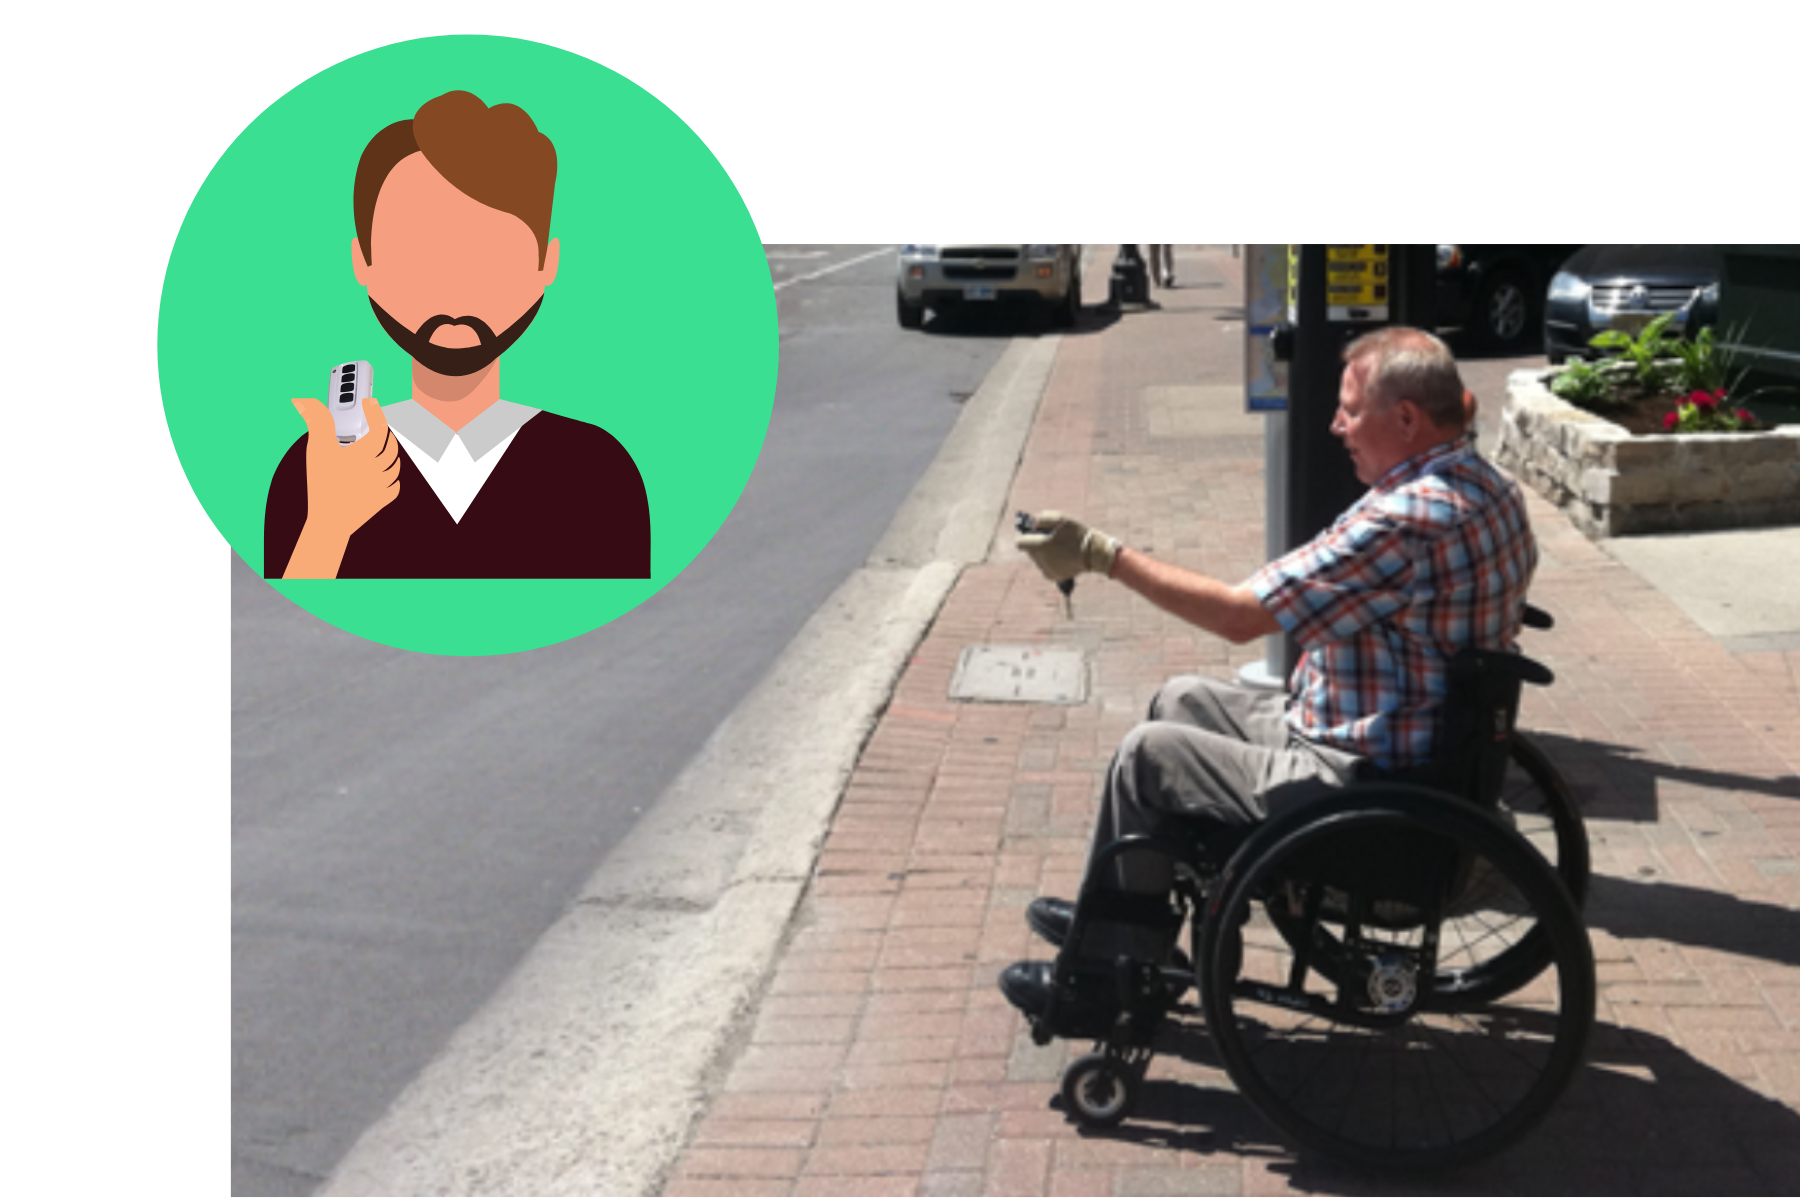 Man in wheelchair holding key2access fob